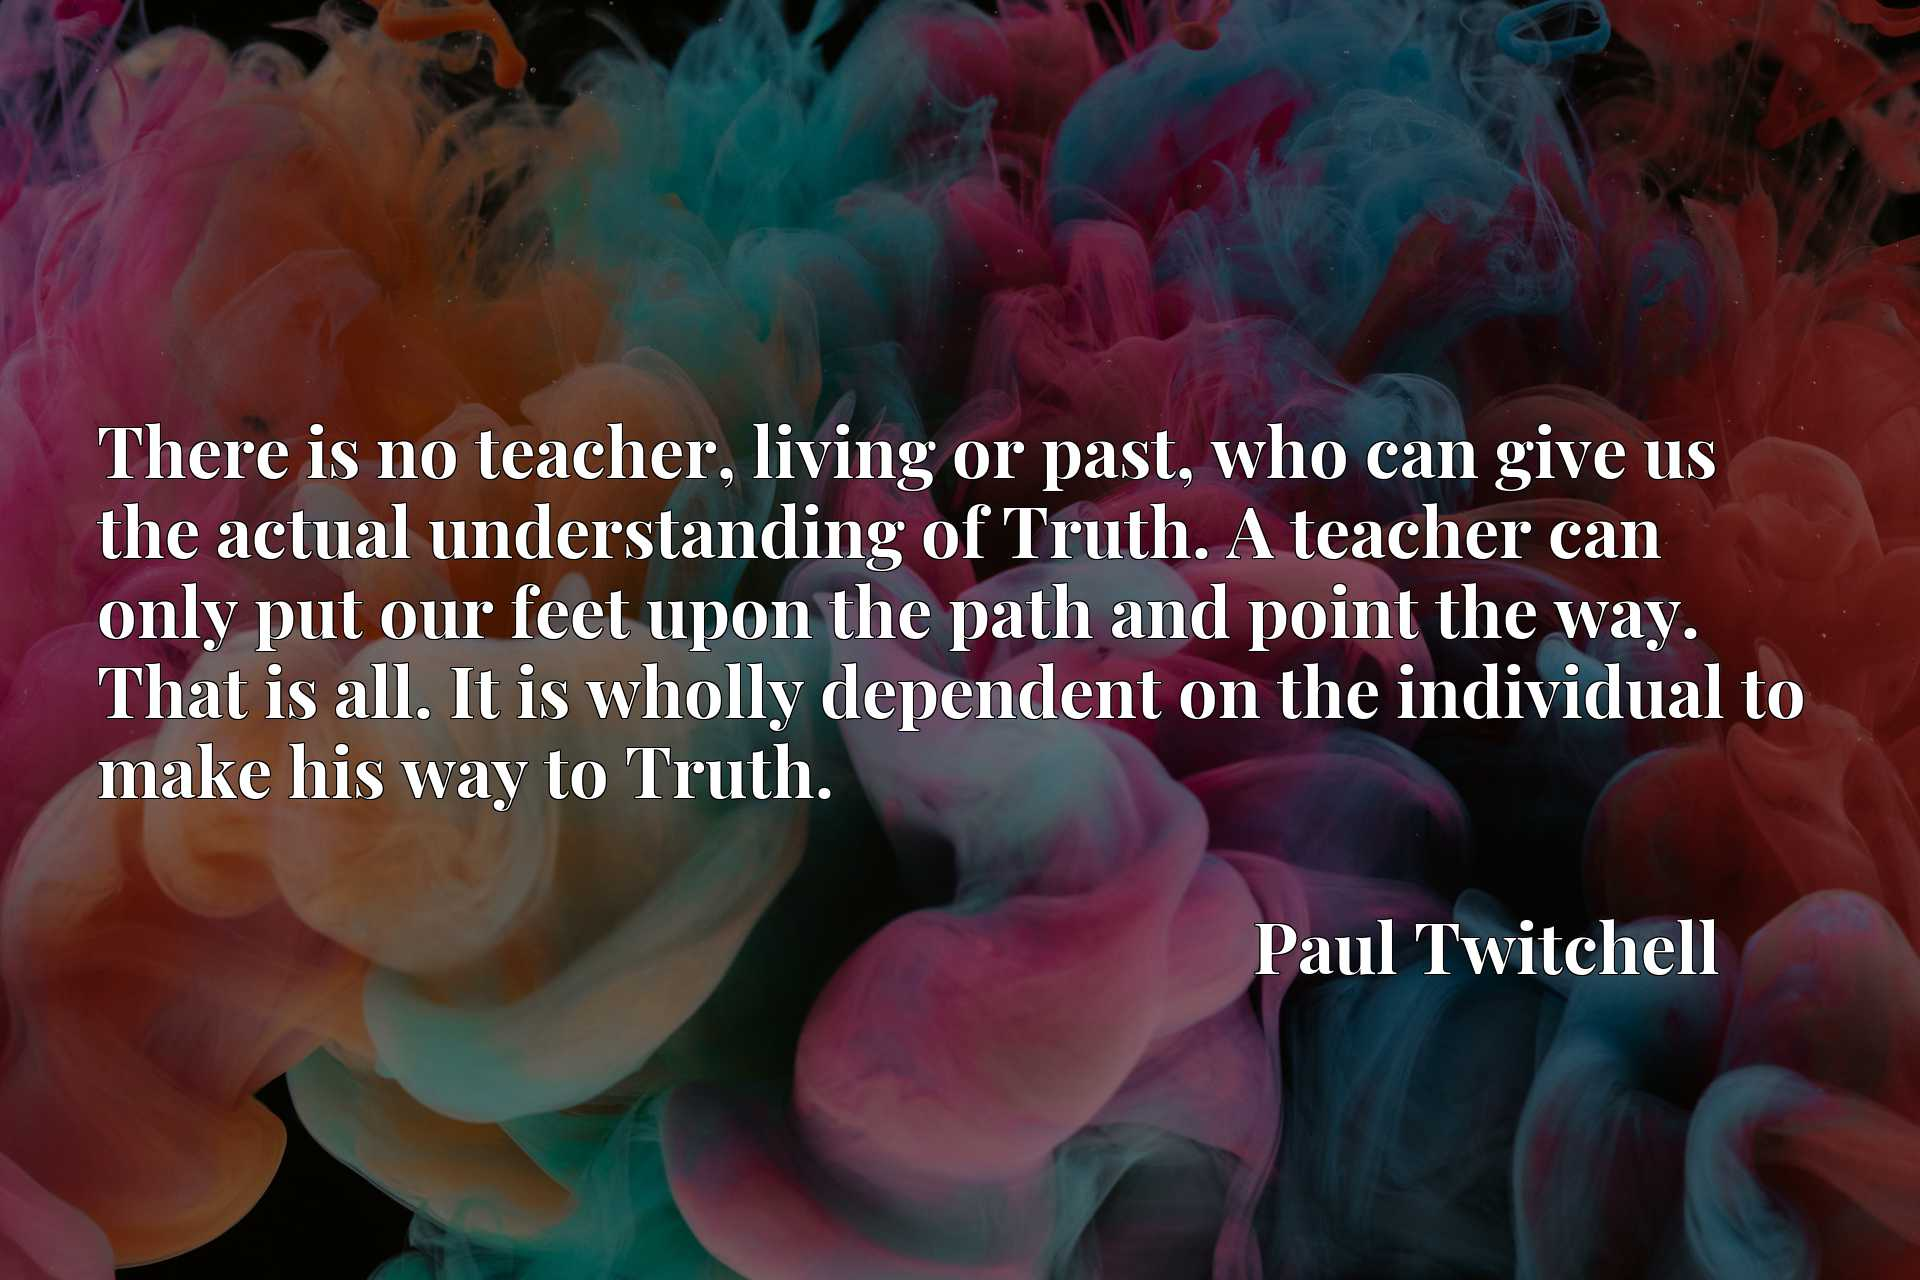 Quote Picture :There is no teacher, living or past, who can give us the actual understanding of Truth. A teacher can only put our feet upon the path and point the way. That is all. It is wholly dependent on the individual to make his way to Truth.